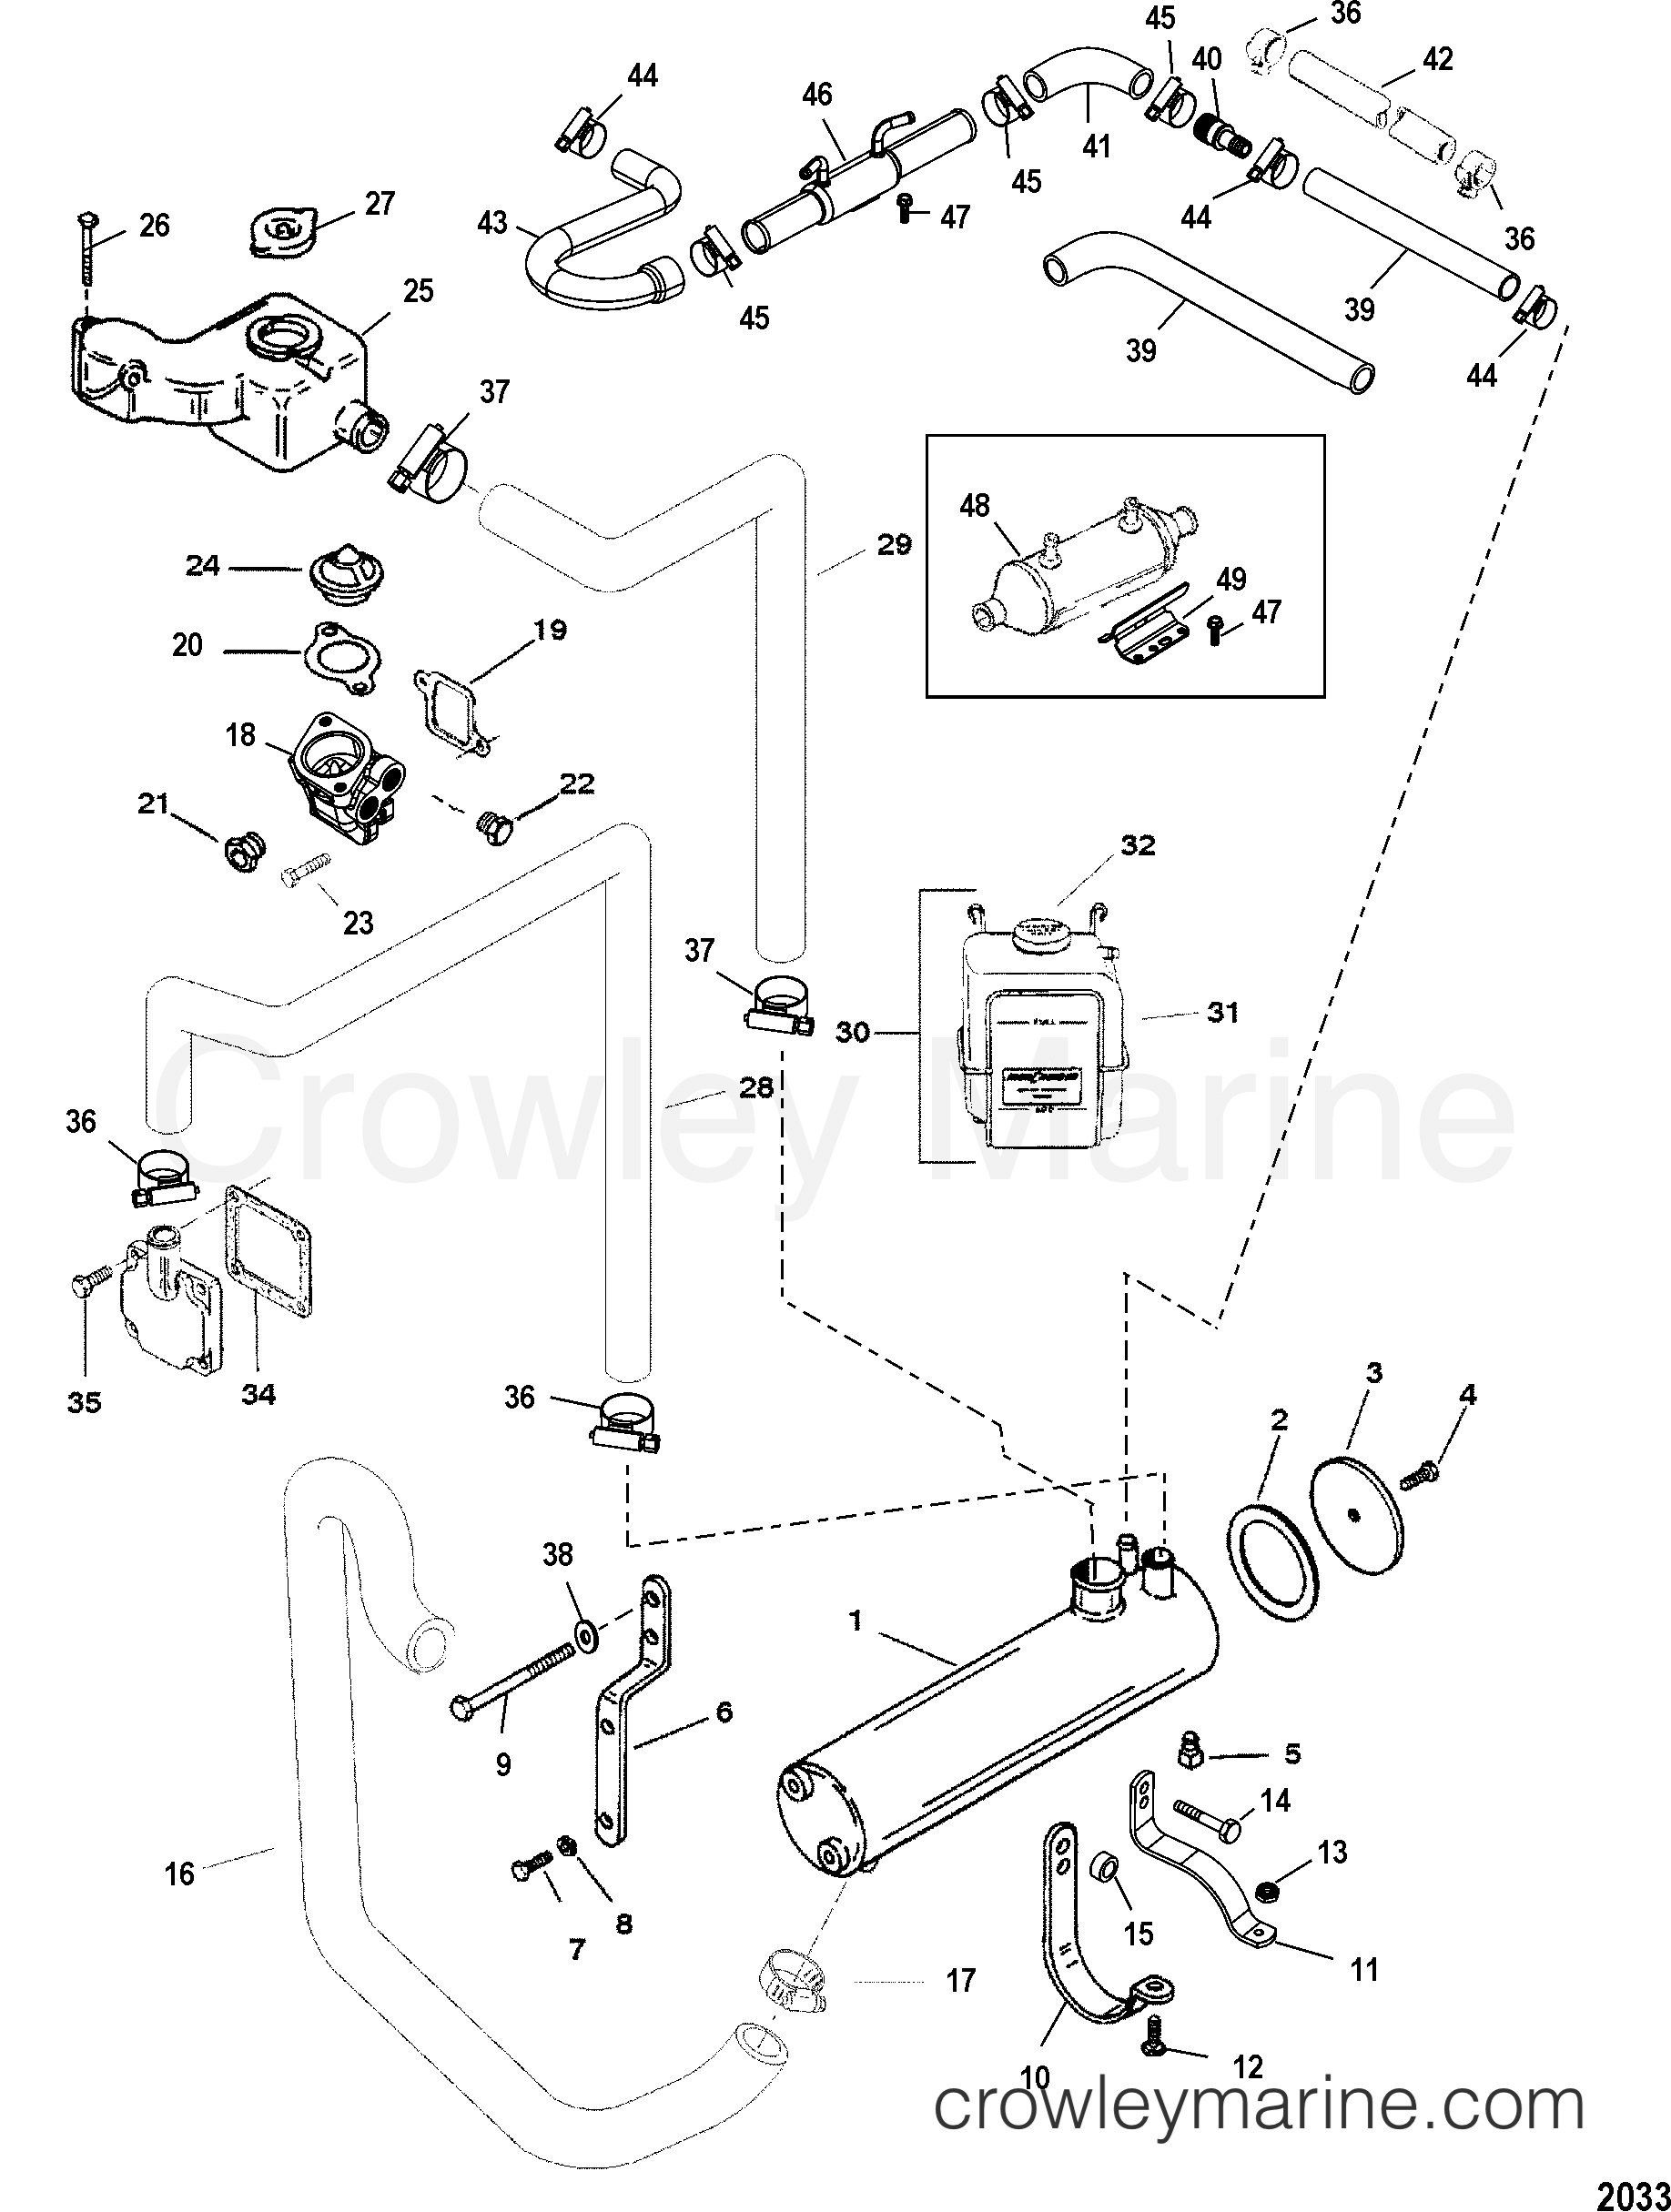 1998 mercruiser 3 0l [alpha] - 4111021l1 - closed cooling system section